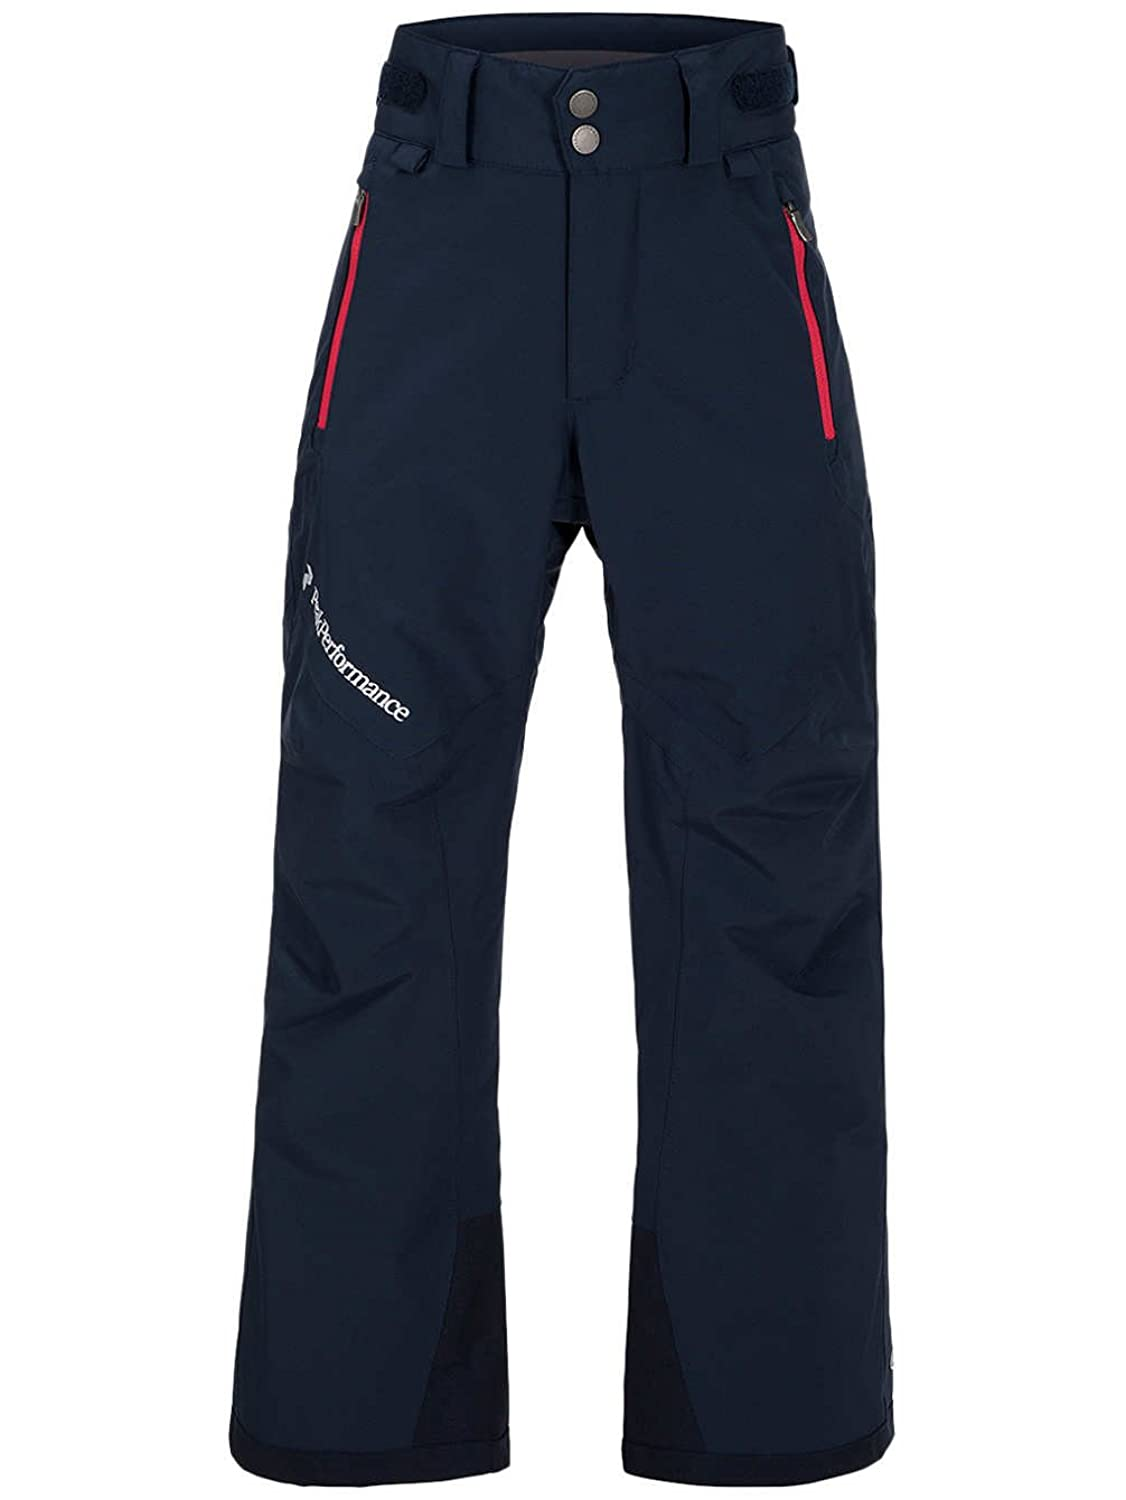 Kinder Snowboard Hose Peak Performance Trinity Pants Boys